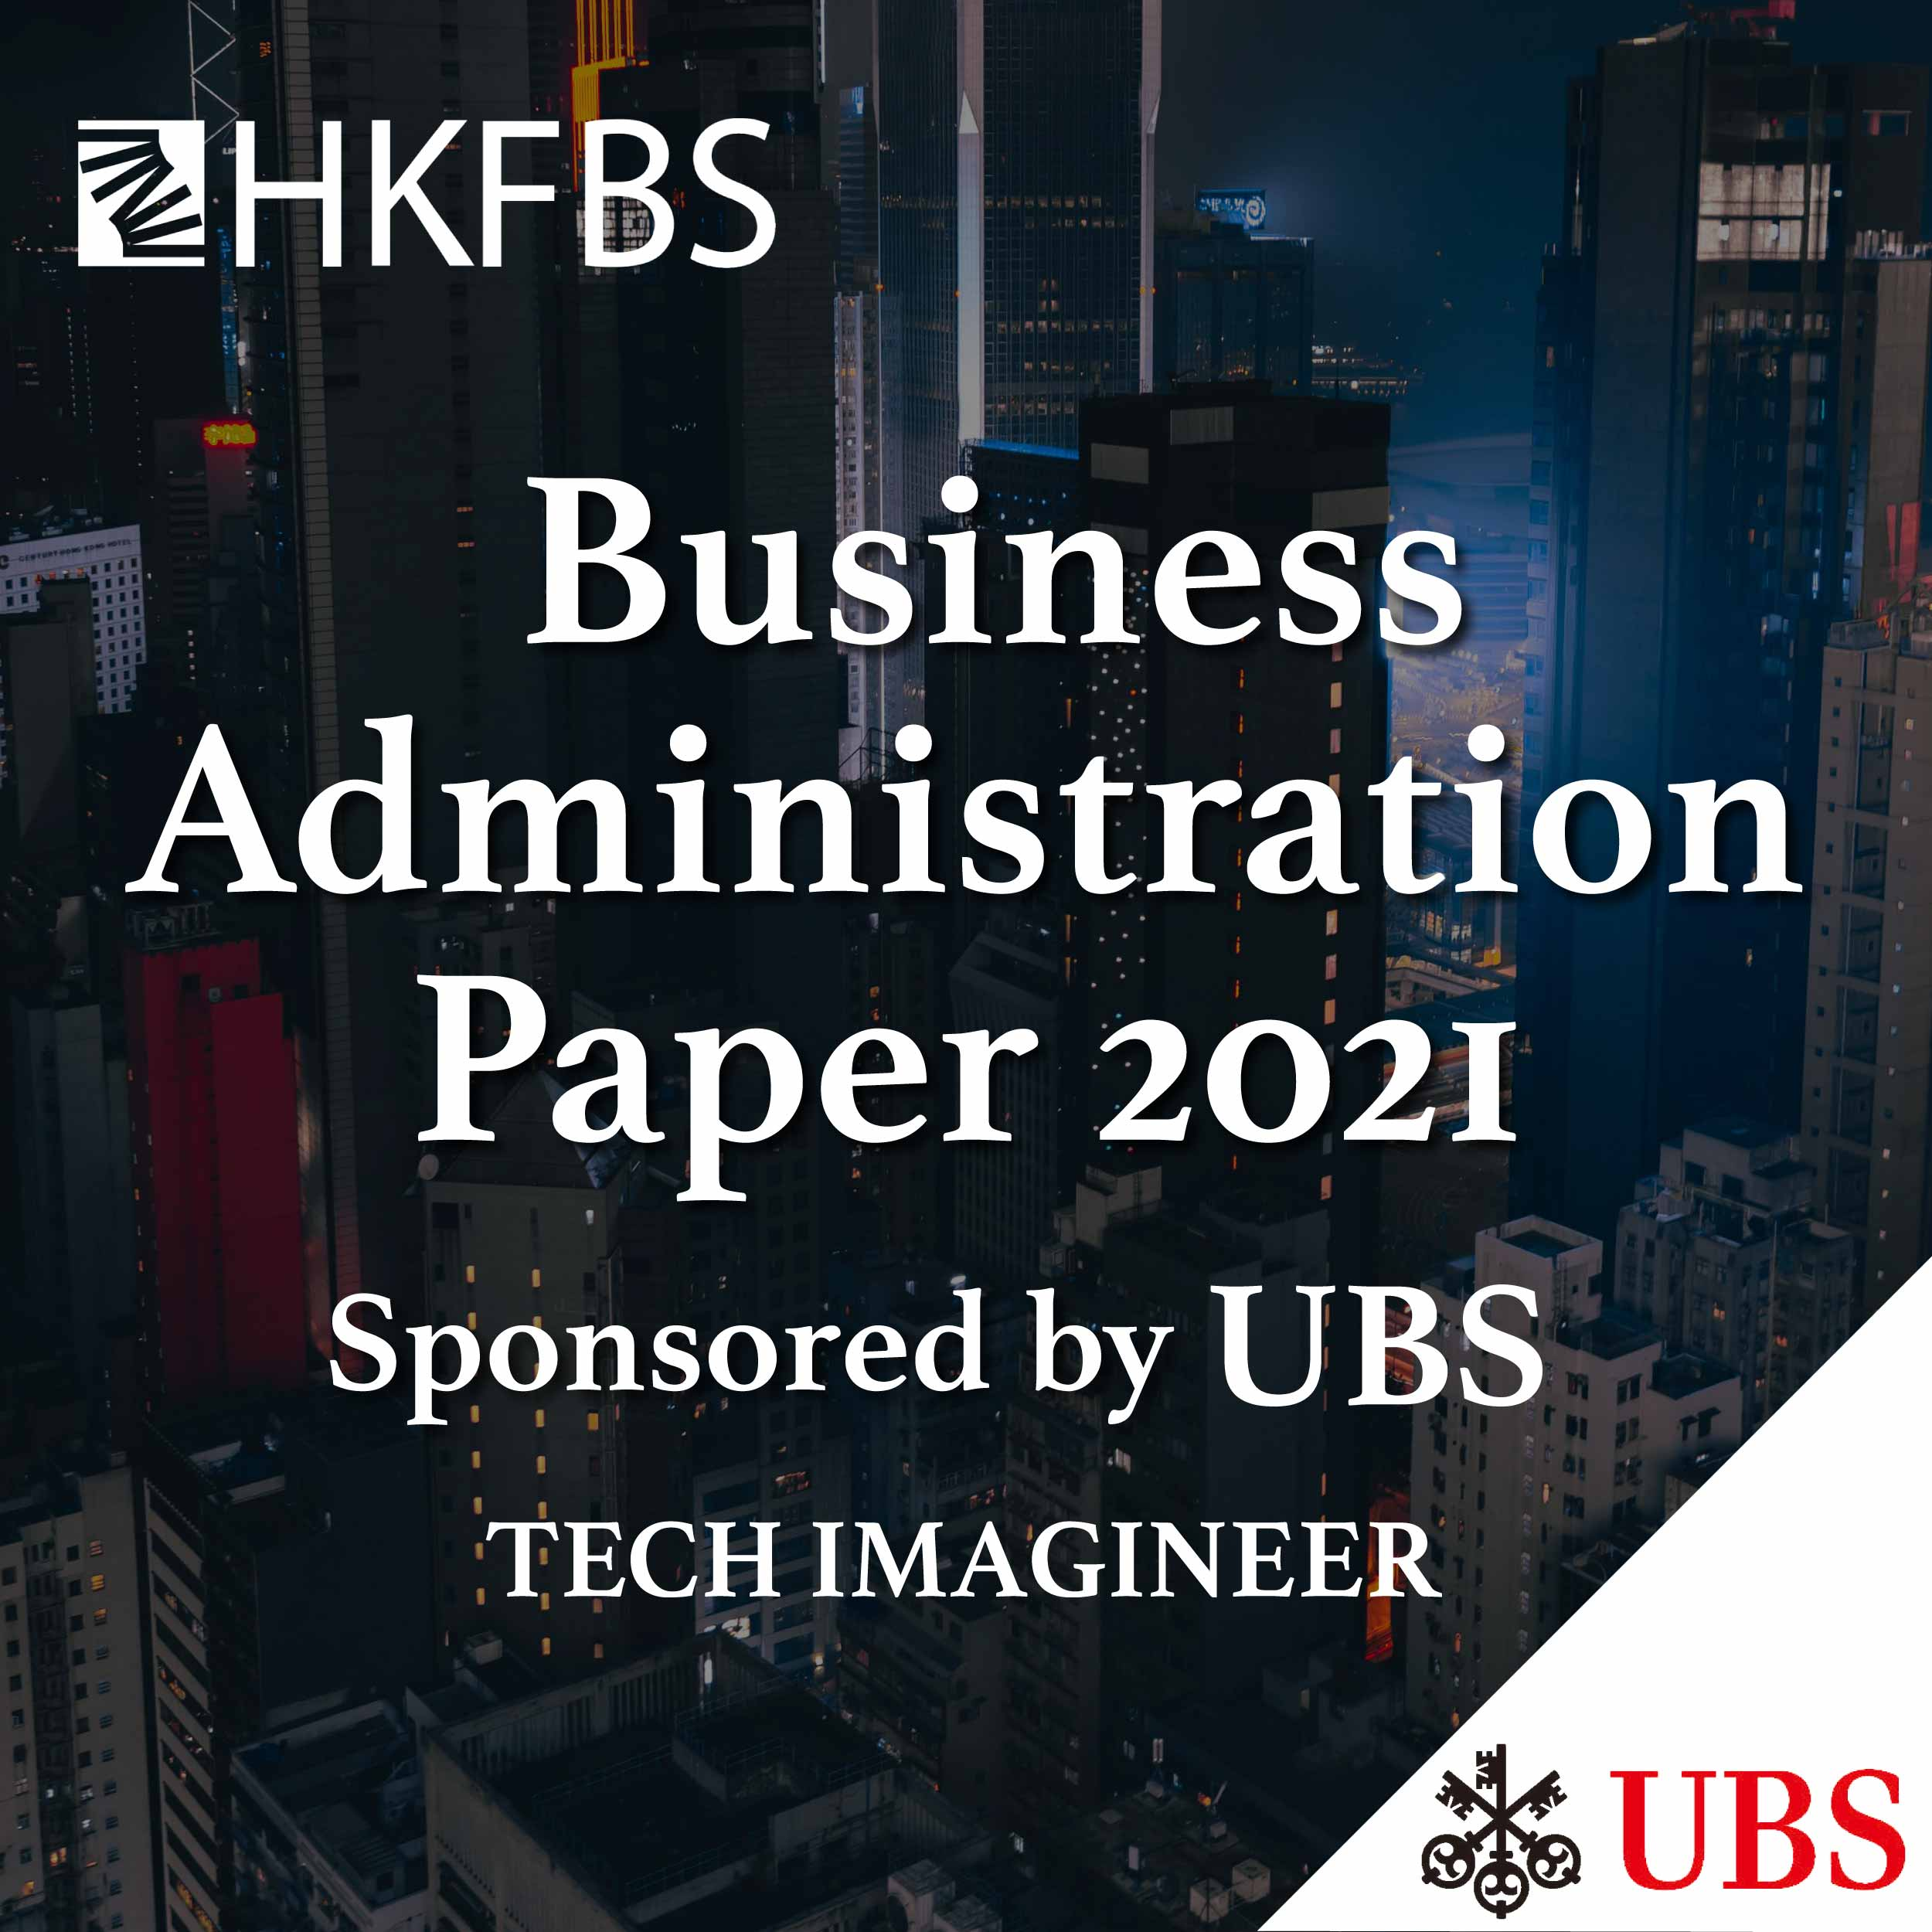 Business Administration Paper 2021 Sponsored by UBS